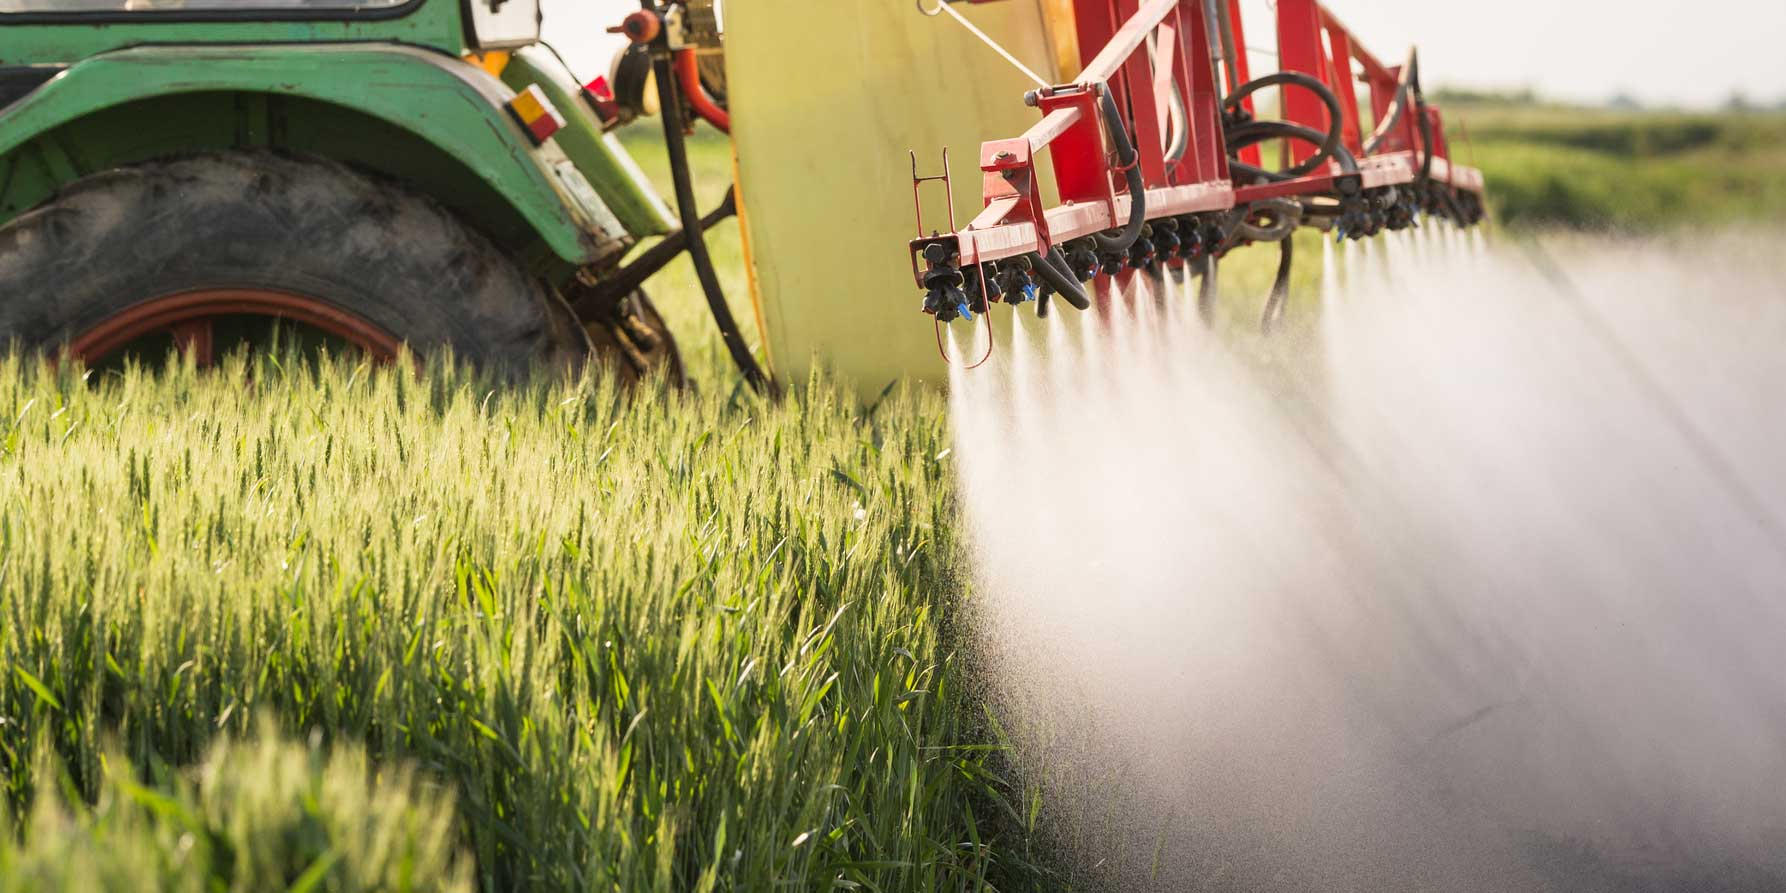 Agricultural machinery spreading pesticides on crops